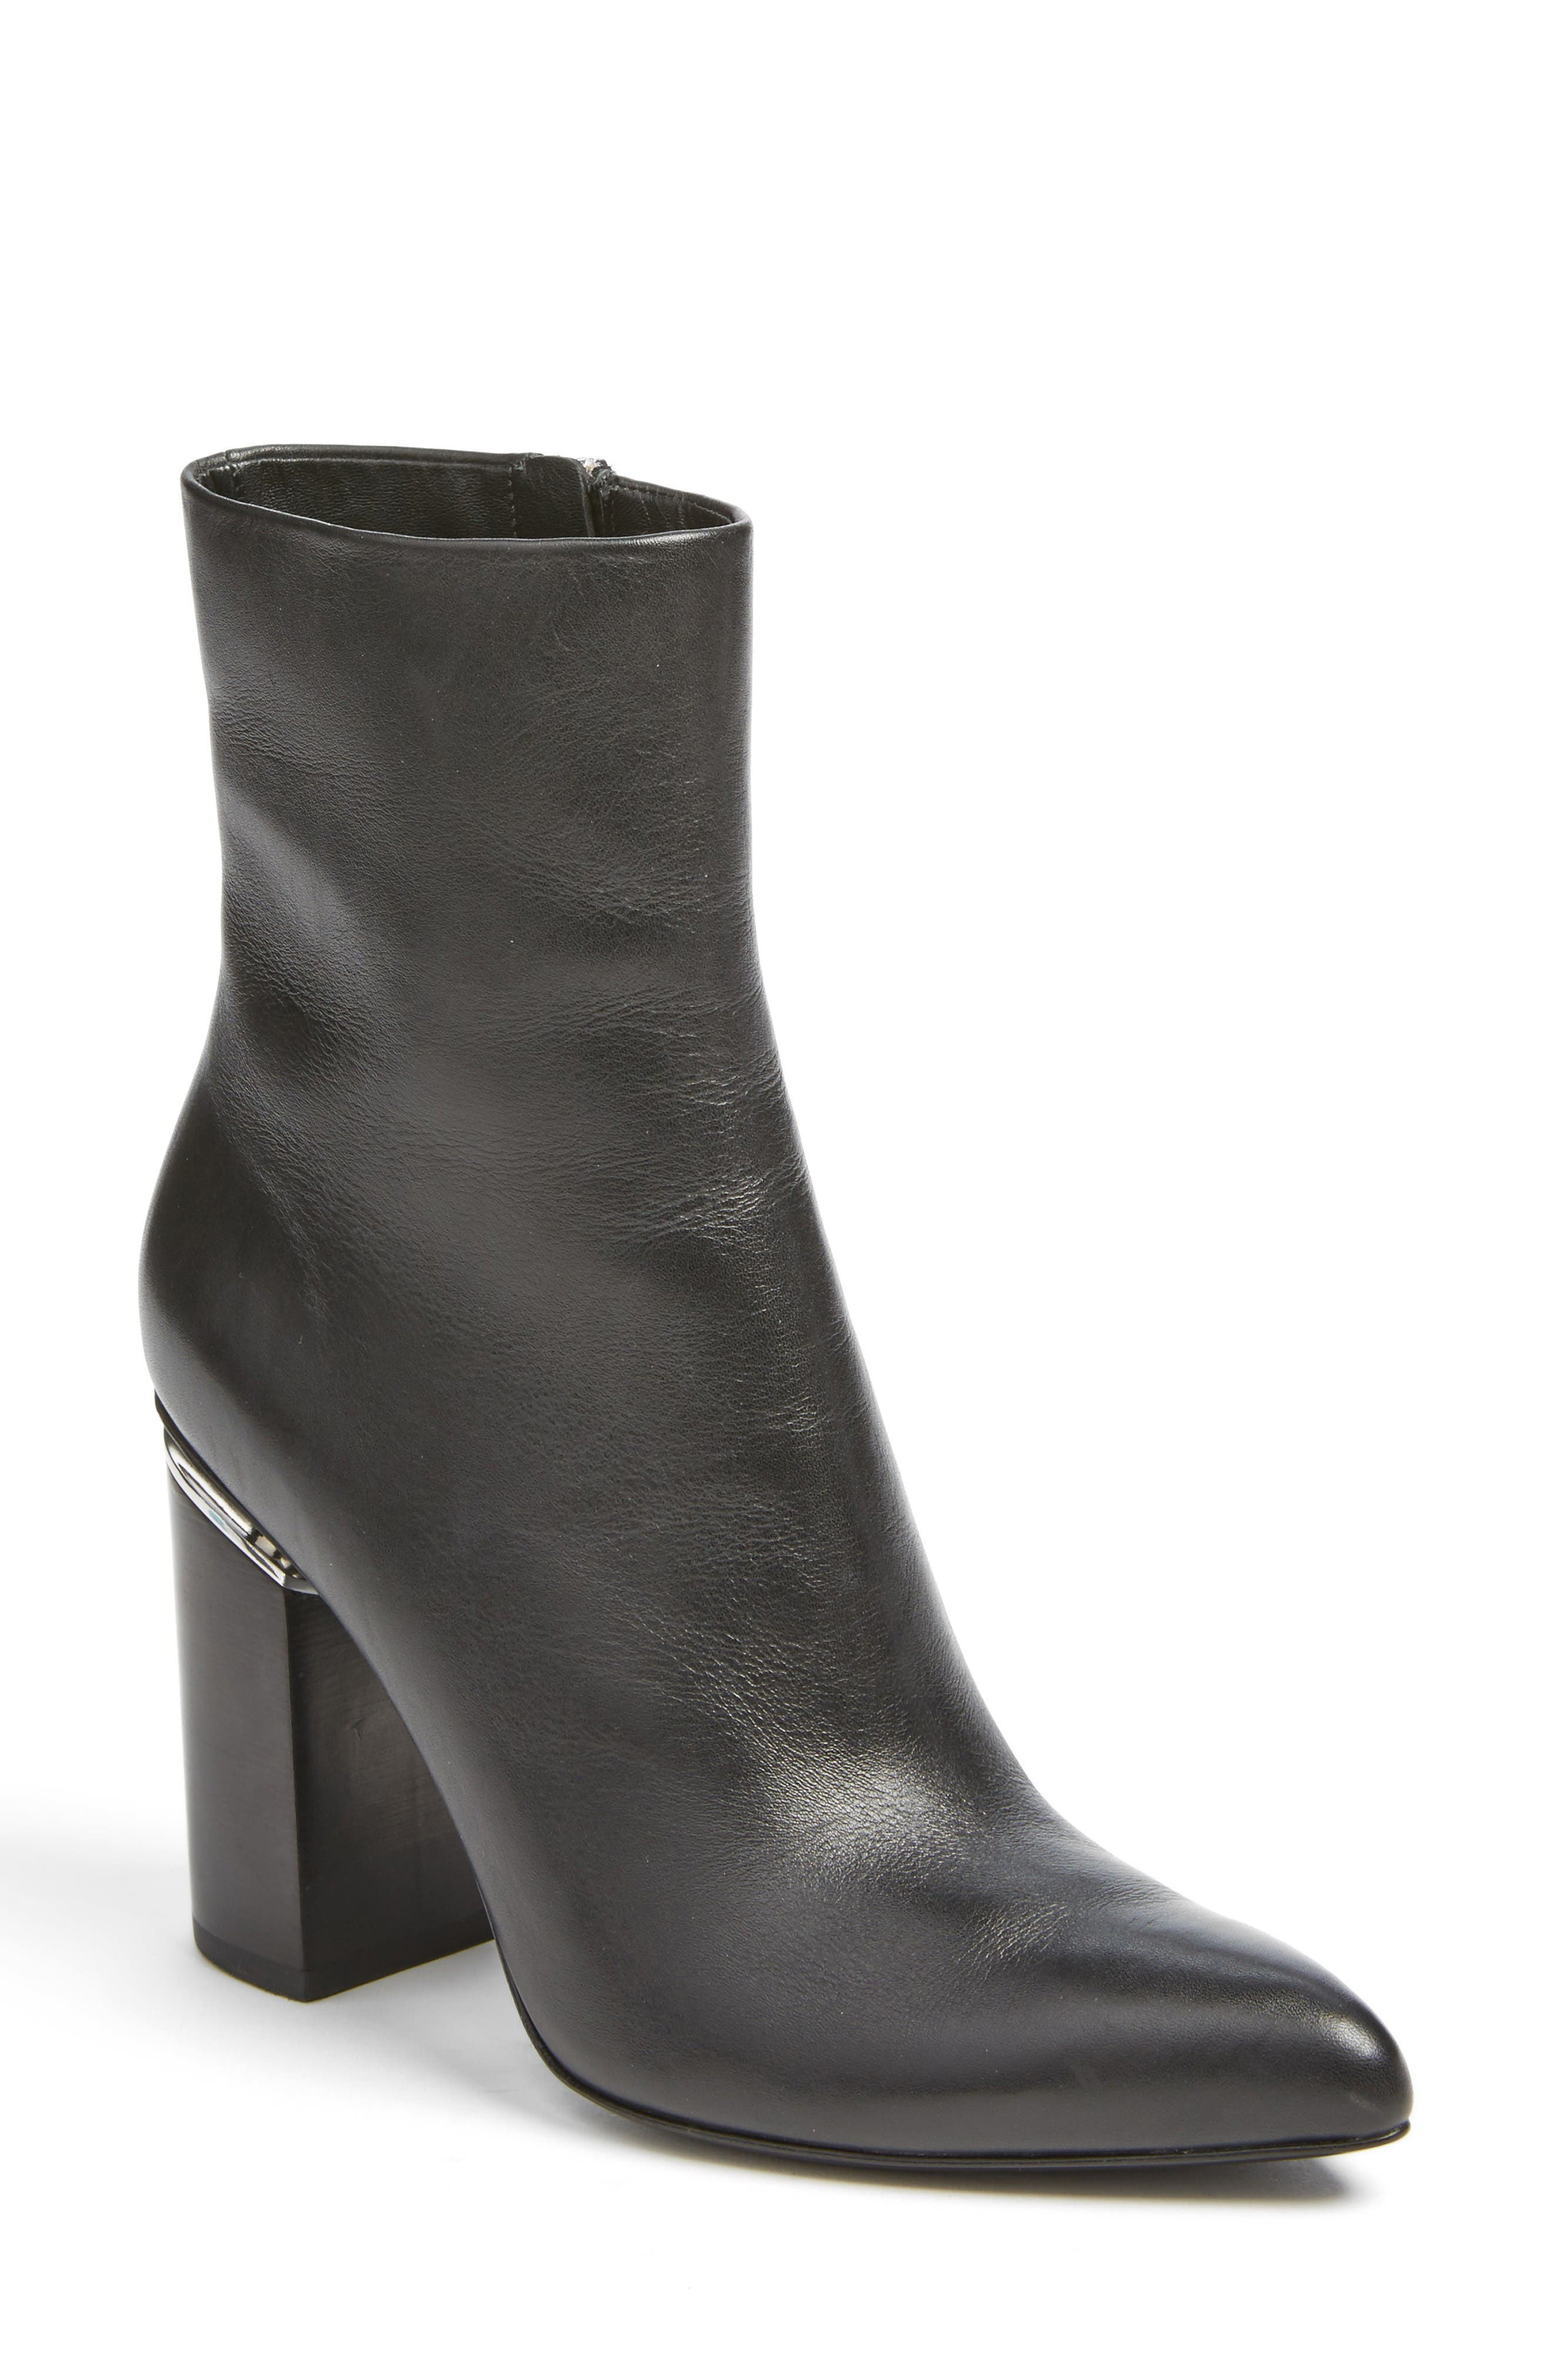 Alternate Image 1 Selected - Alexander Wang Kirby Boot (Women)